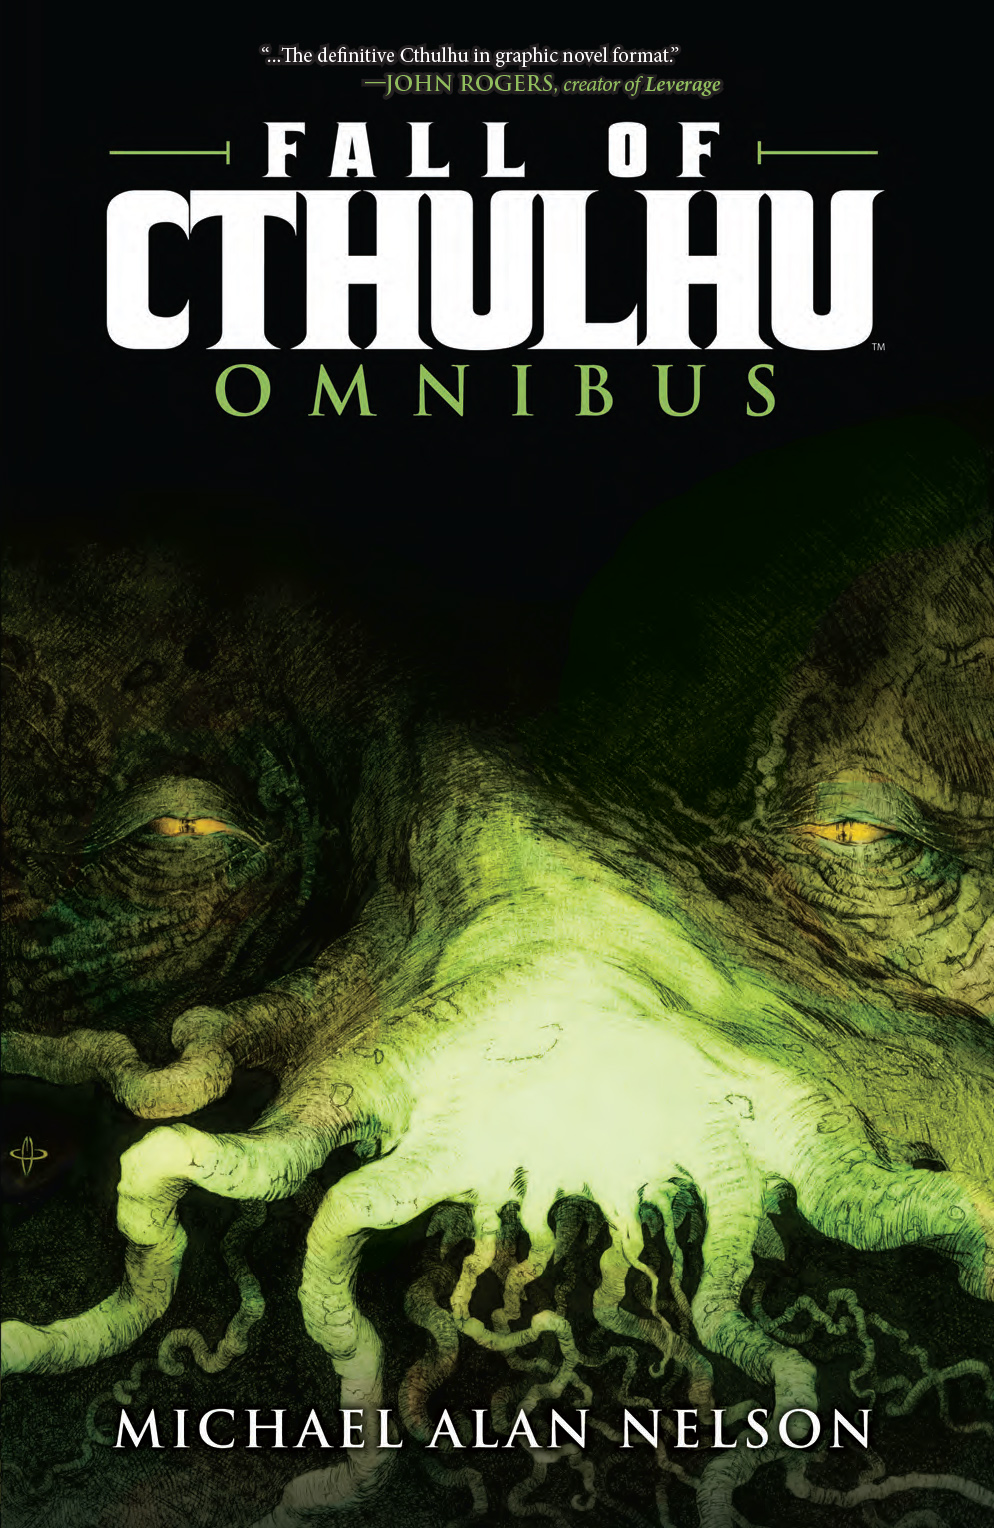 Fall_of_Cthulhu_Omnibus_TP_Cover.jpg